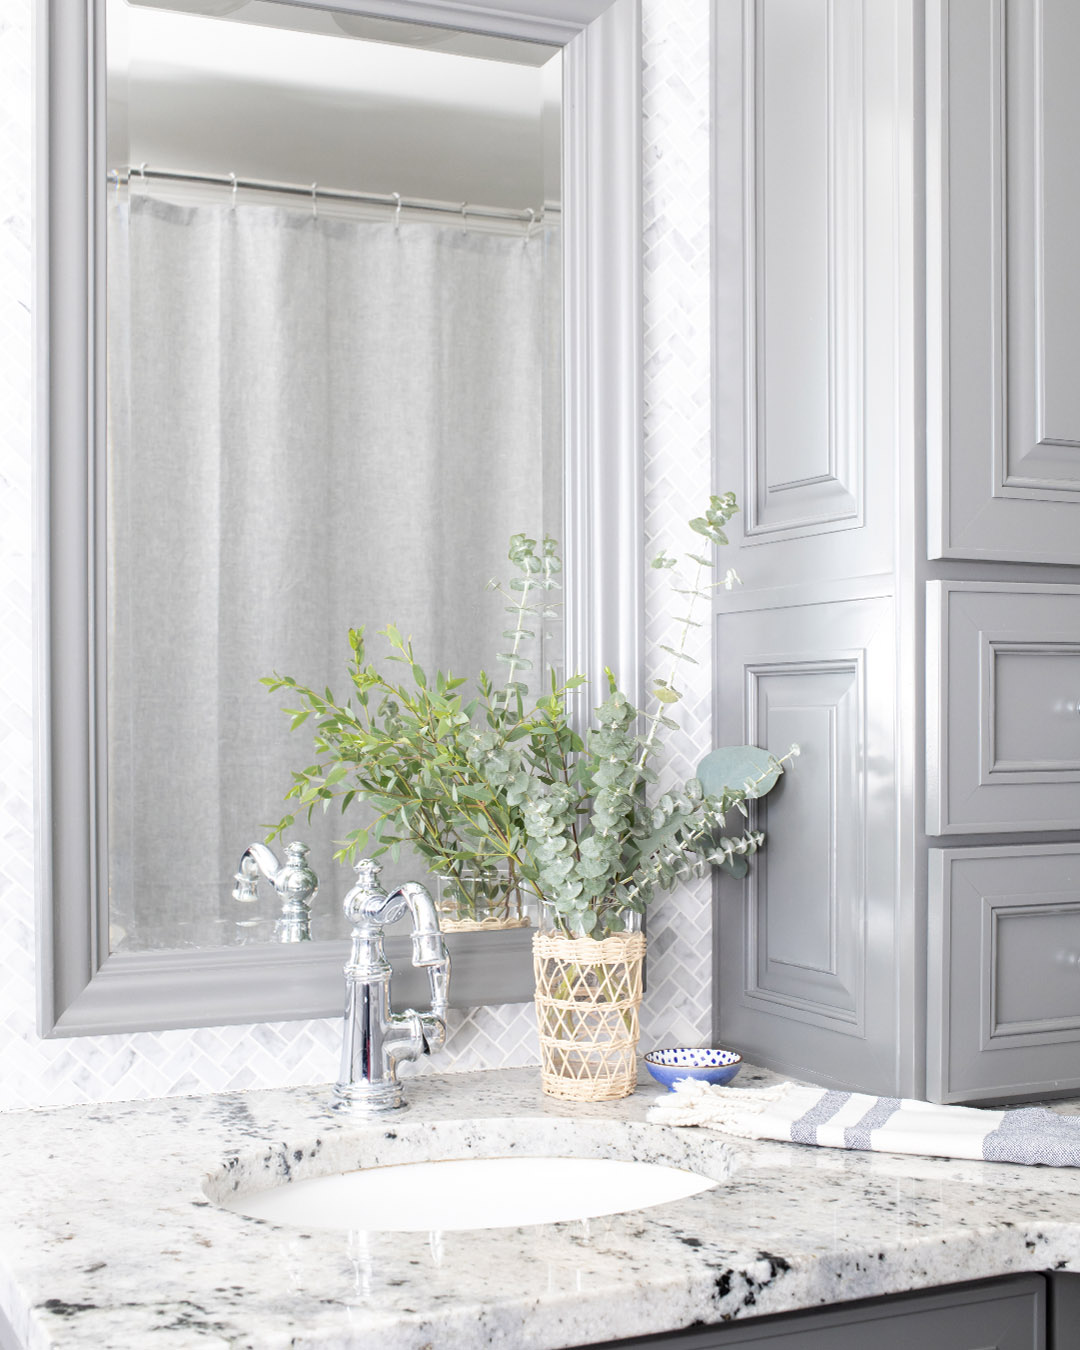 In today's post we'll talk about how to care for fresh eucalyptus so it lasts as long as possible and dries nicely too!